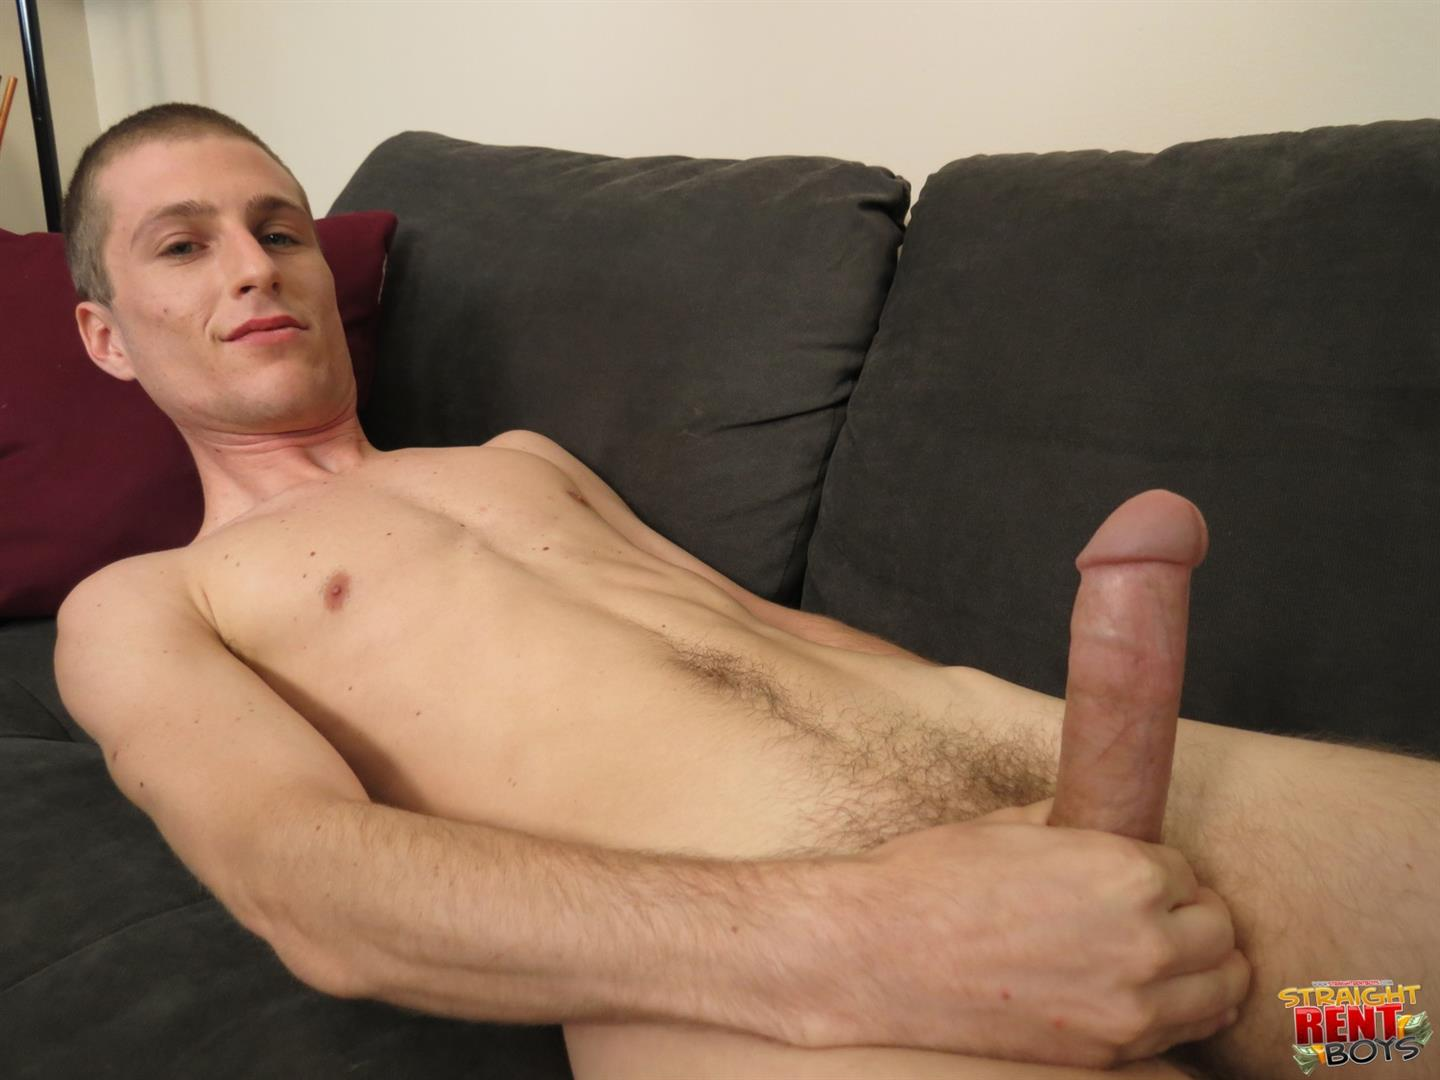 Staight-Rent-Boys-Jacob-Griffin-Skinny-Straight-Twink-With-A-Big-Cock-Amateur-Gay-Porn-16 Amateur Straight Skinny Twink Jerking Off His Big Cock